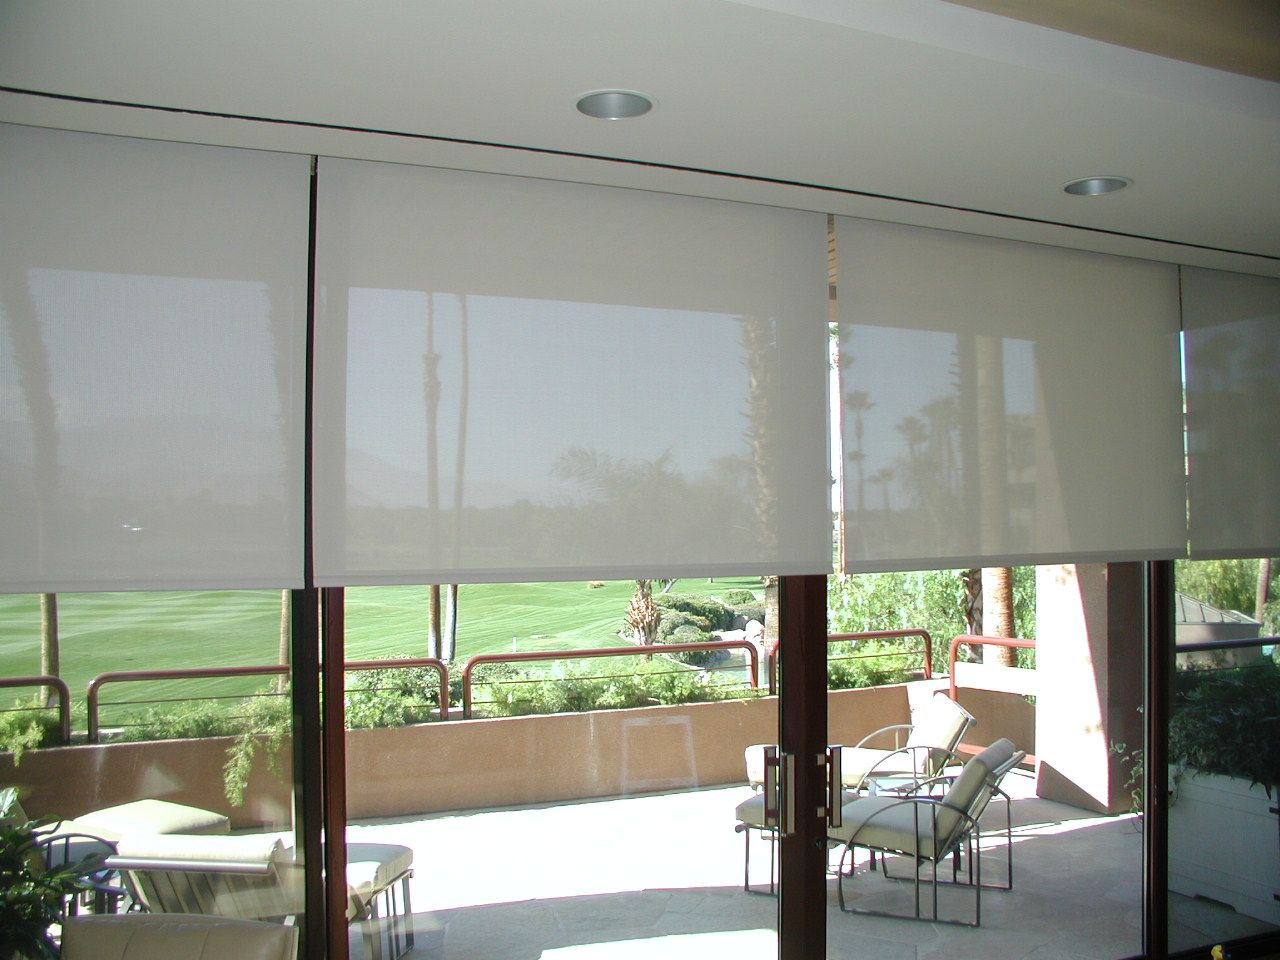 Top Roll Up Shades For Your Home Patio Door Coverings Patio Door Shades Door Coverings